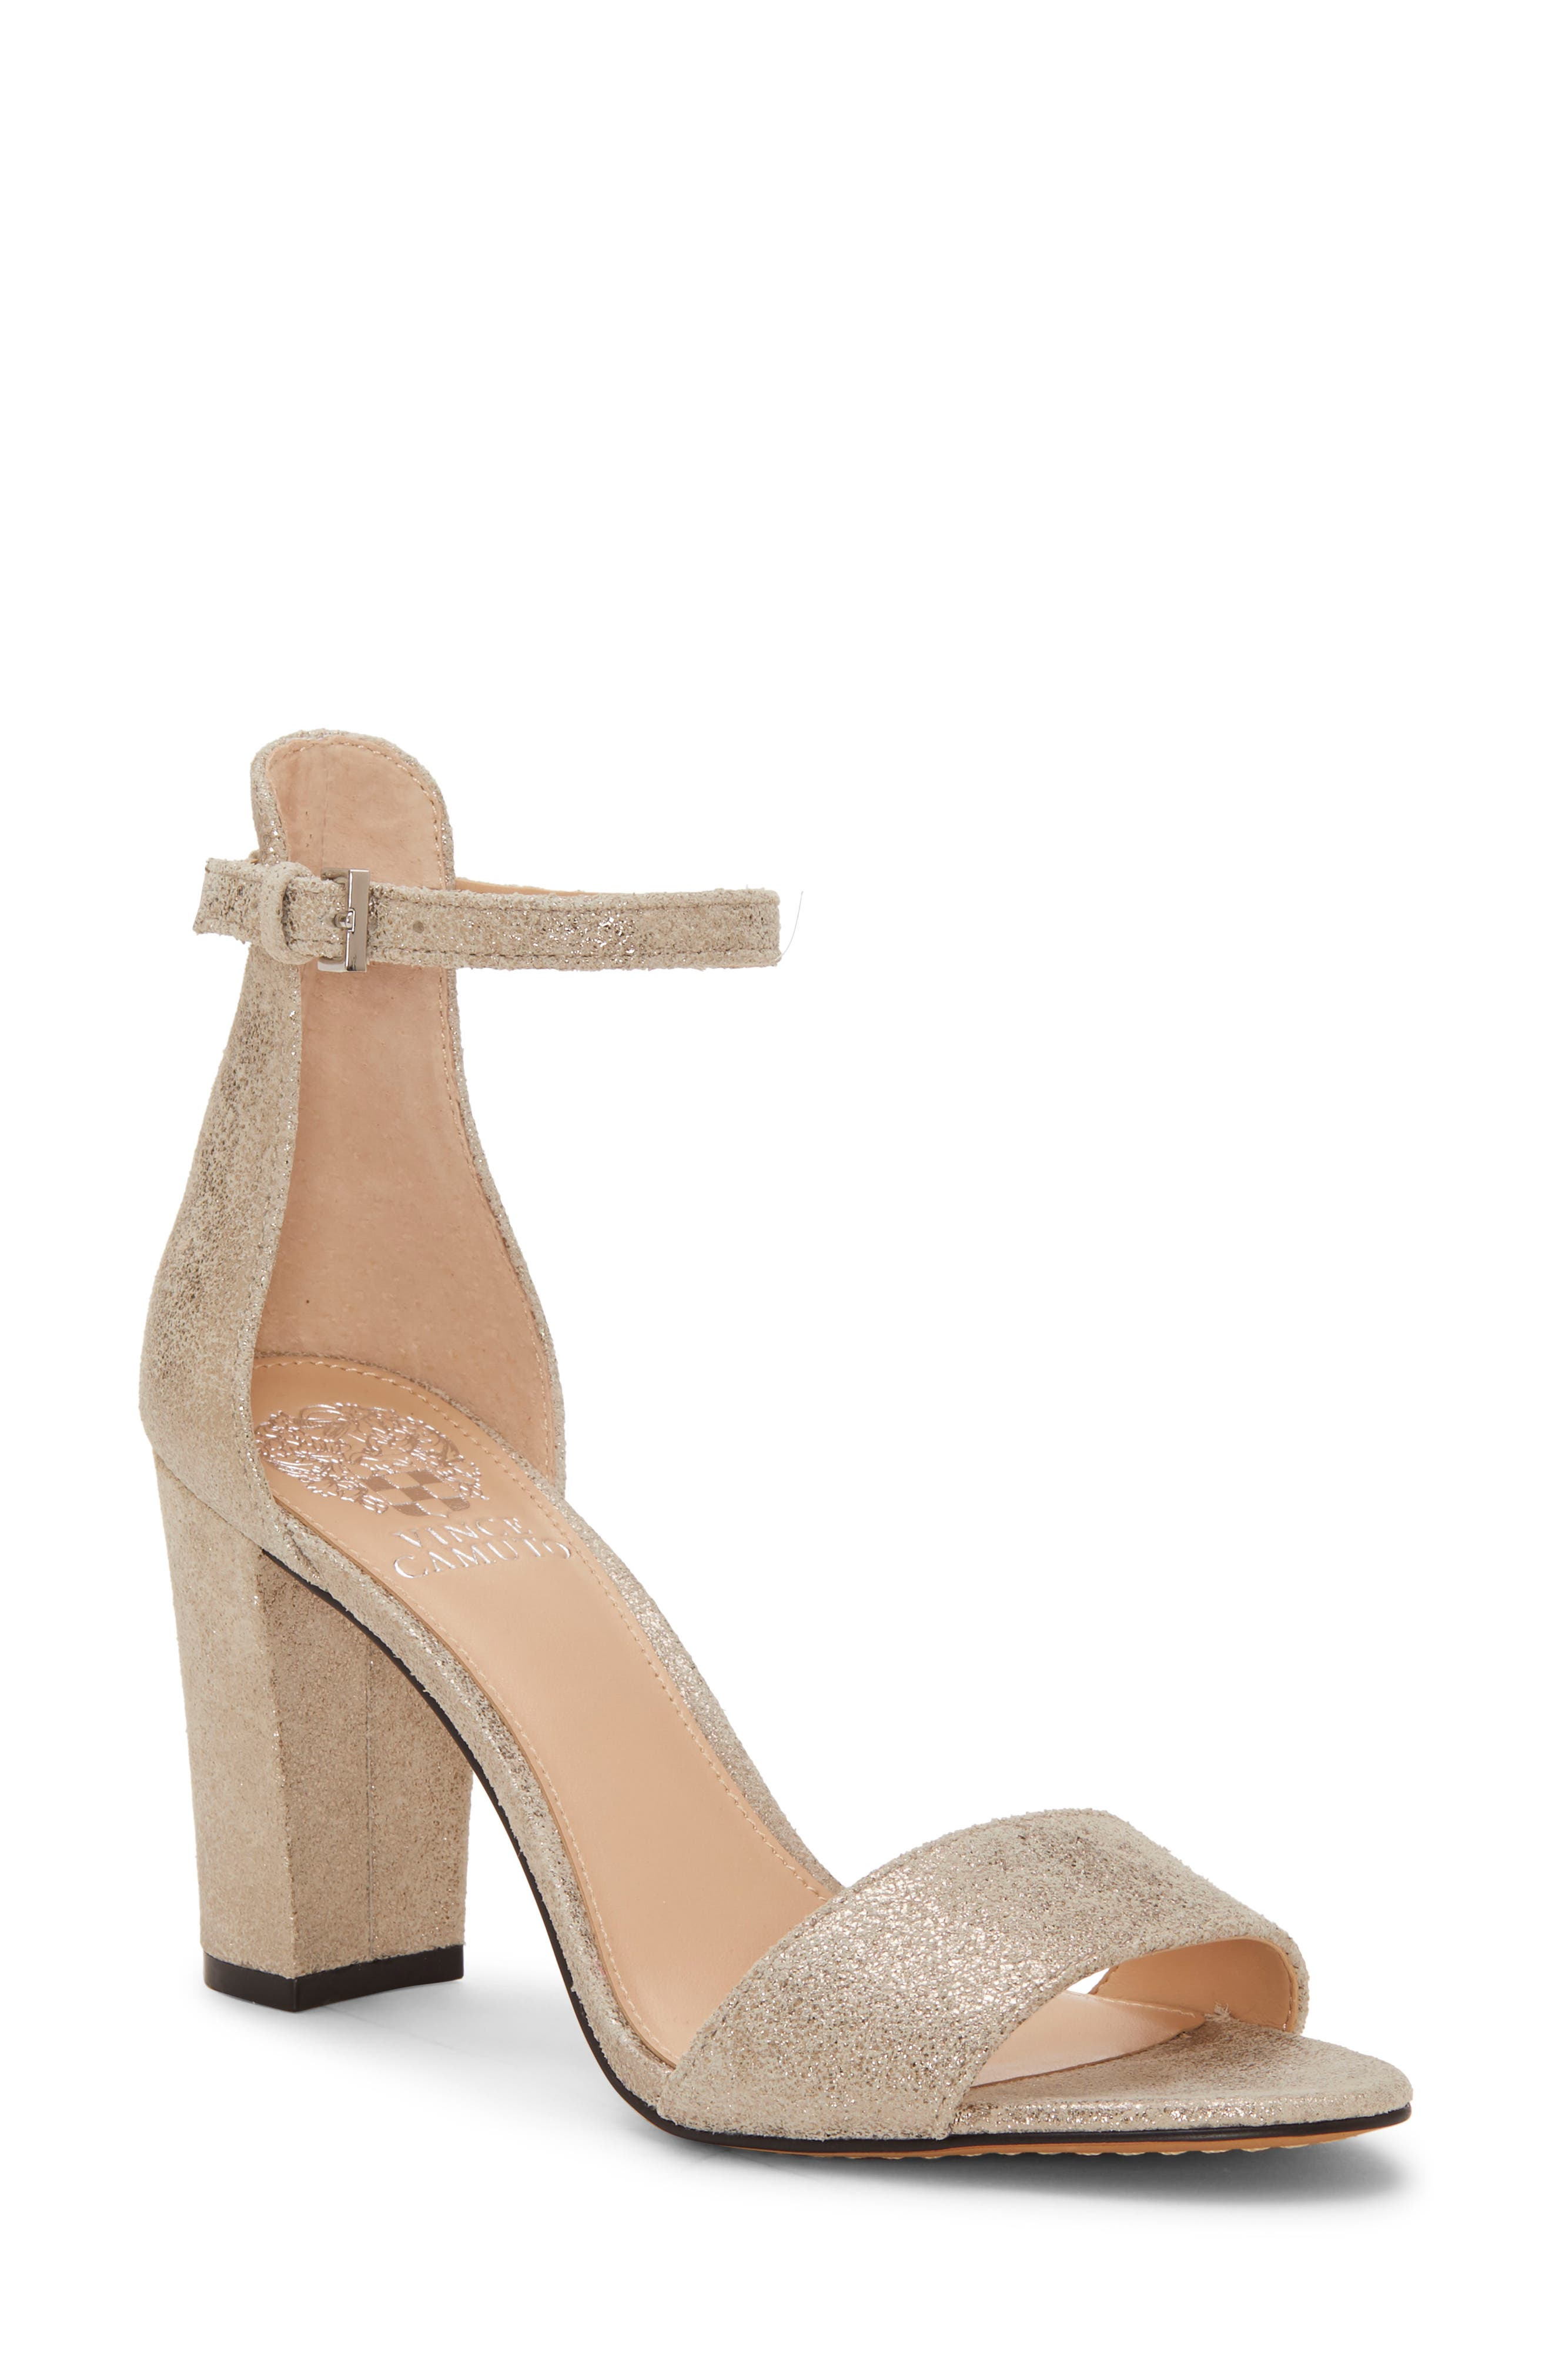 ce1d30bb555 Vince camuto sandals for women nordstrom jpg 2640x4048 Gladiator sandals  vince camuto lyst